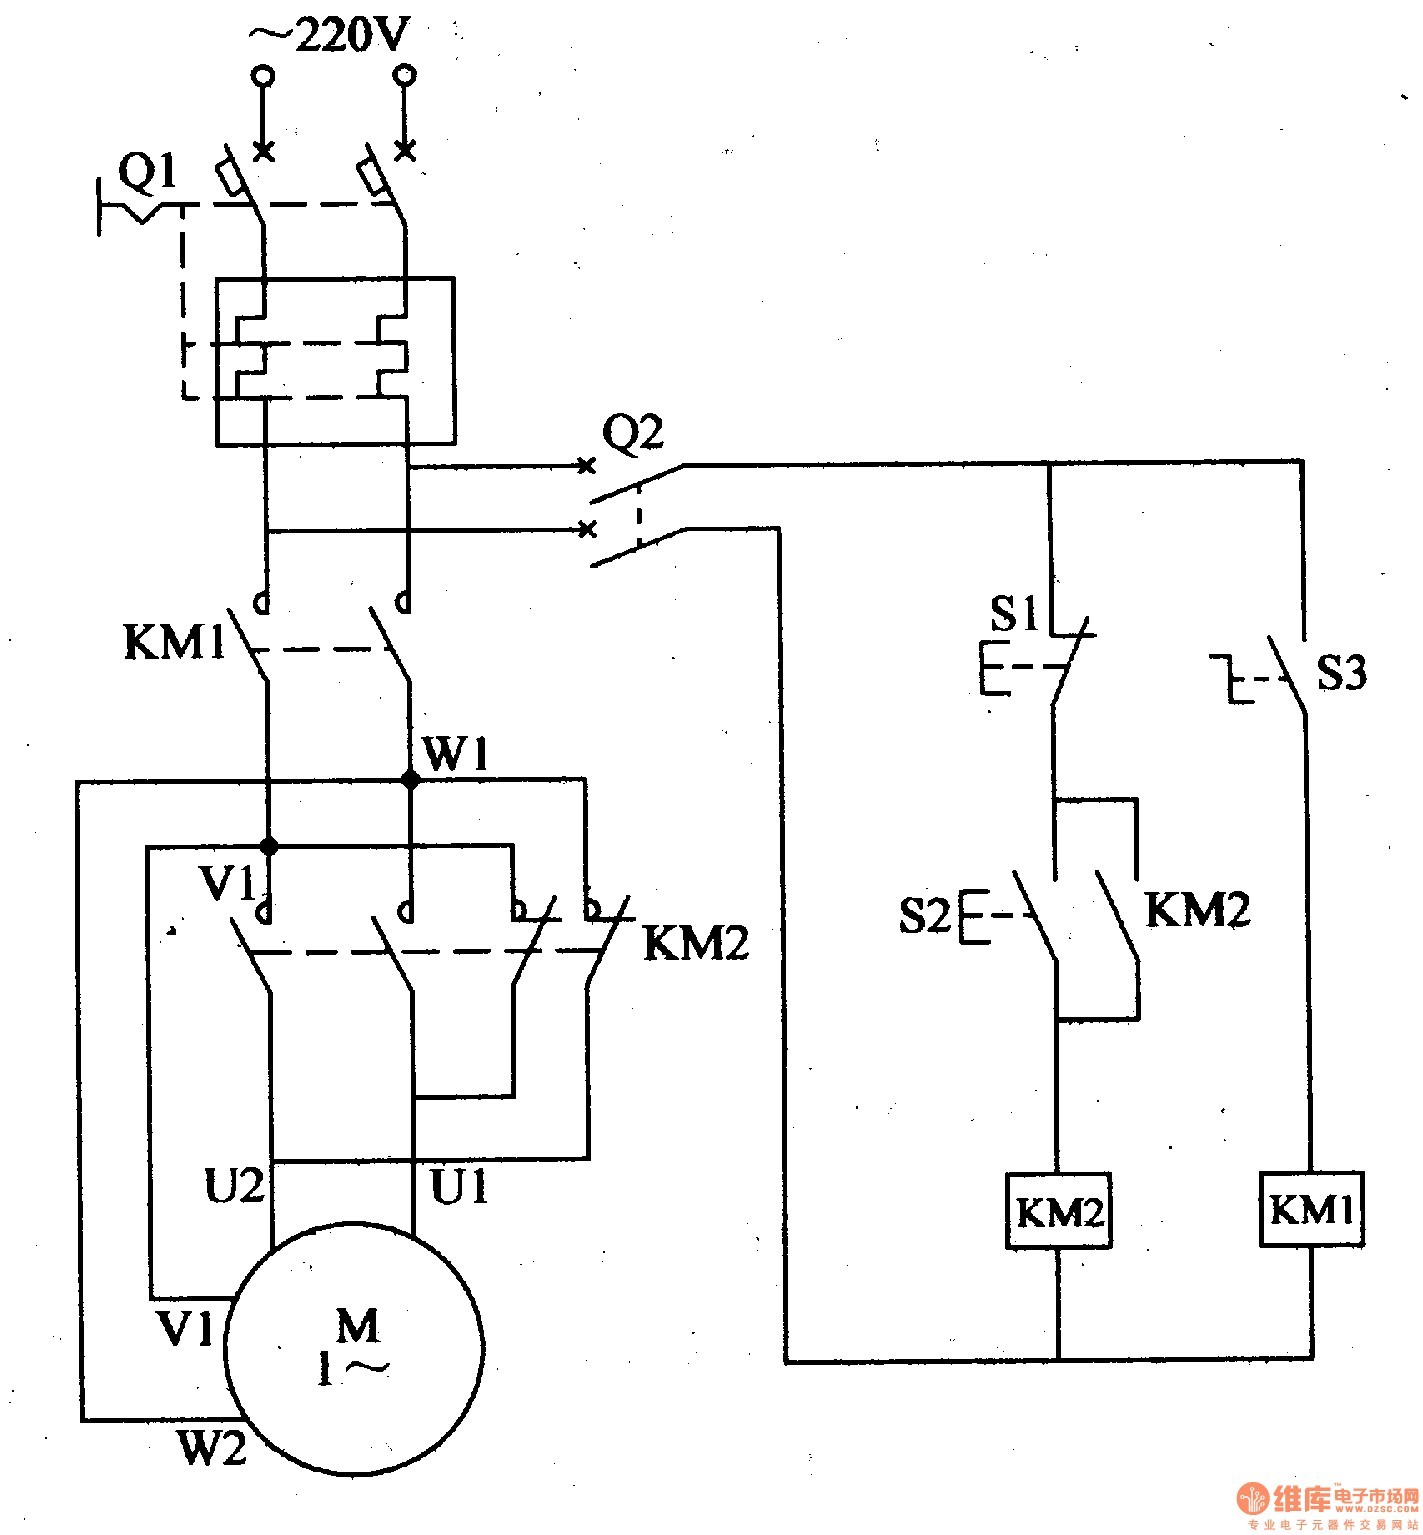 208 Volt Single Phase Wiring Diagram in addition Single Phase 240 Volt Schematic Wiring Diagram moreover Motordiagram81 Wire Diagrams Easy Simple Detail Ideas General Ex le Dayton Electric Motor Wiring Diagram also Wiring Diagram Forward Reverse Switch additionally Salzer Drum Switch Wiring Diagram. on single phase reversible motor wiring diagram